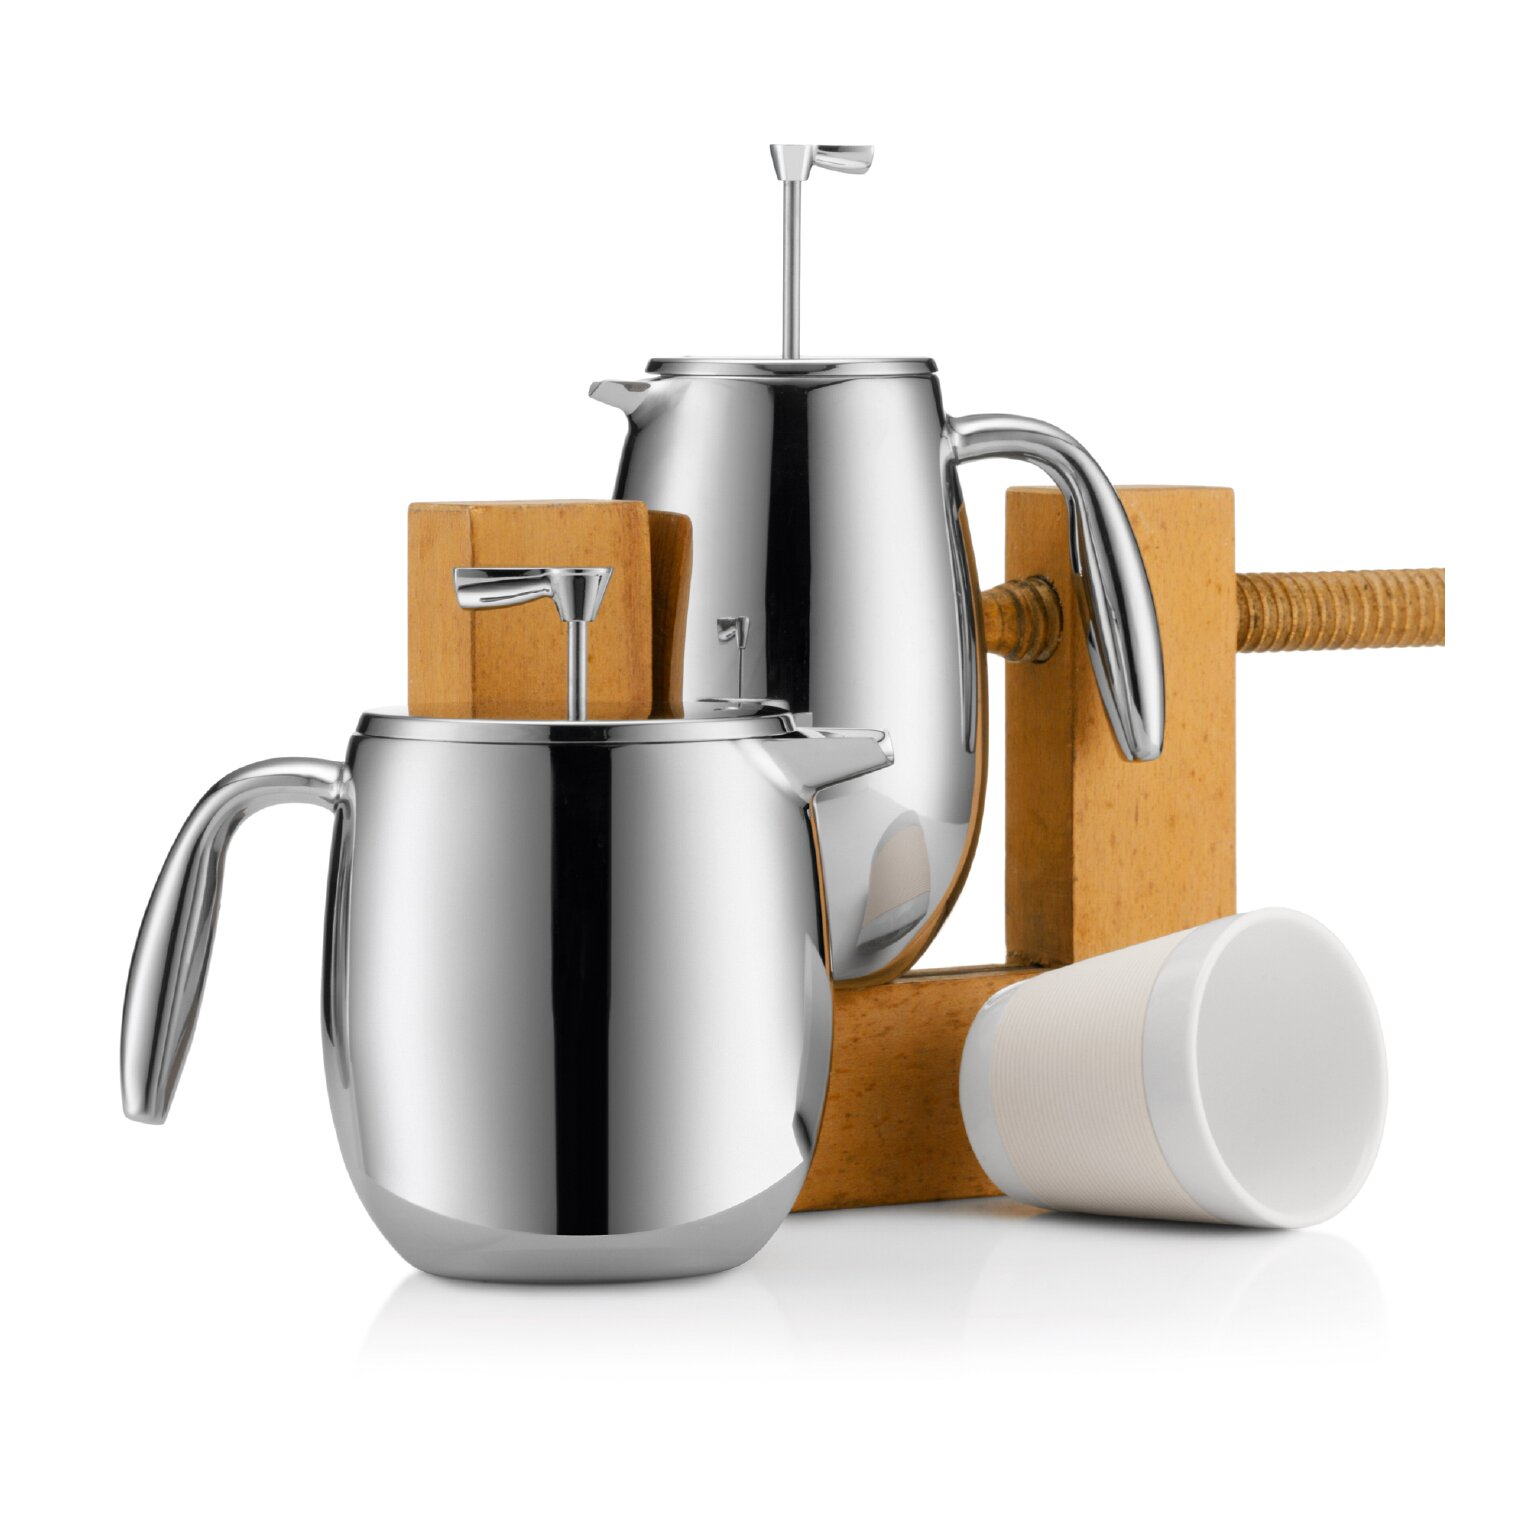 Columbia+4+Cup+Double+Wall+French+Press+Coffee+Maker Bodum Columbia French Press Coffee Maker Double Wall  Cup